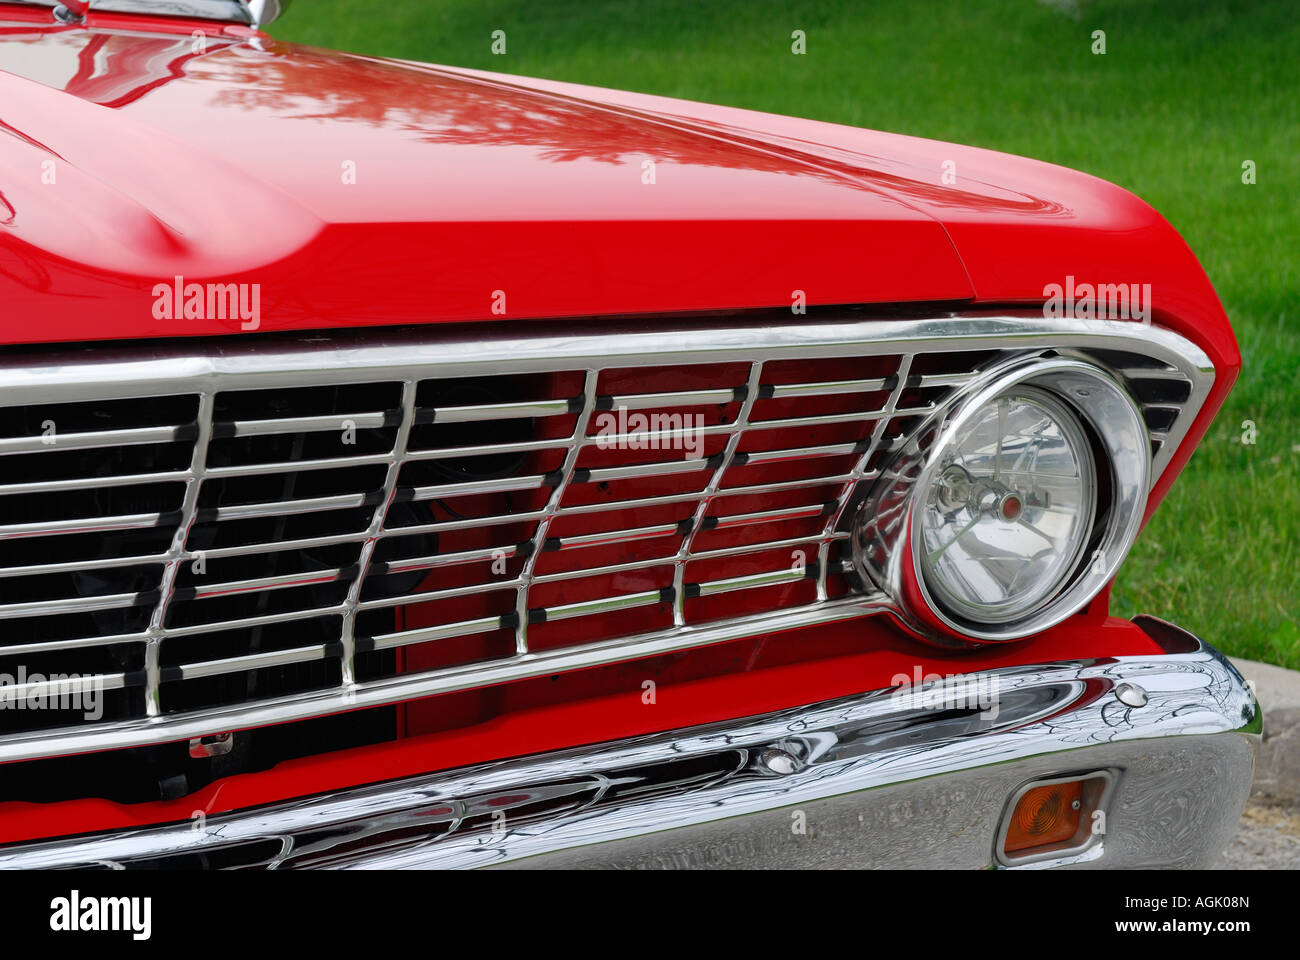 Ford Falcon Car Stock Photos Images Alamy 1964 Futura Refurbished Red Front Grill And Hood Against Green Grass Image